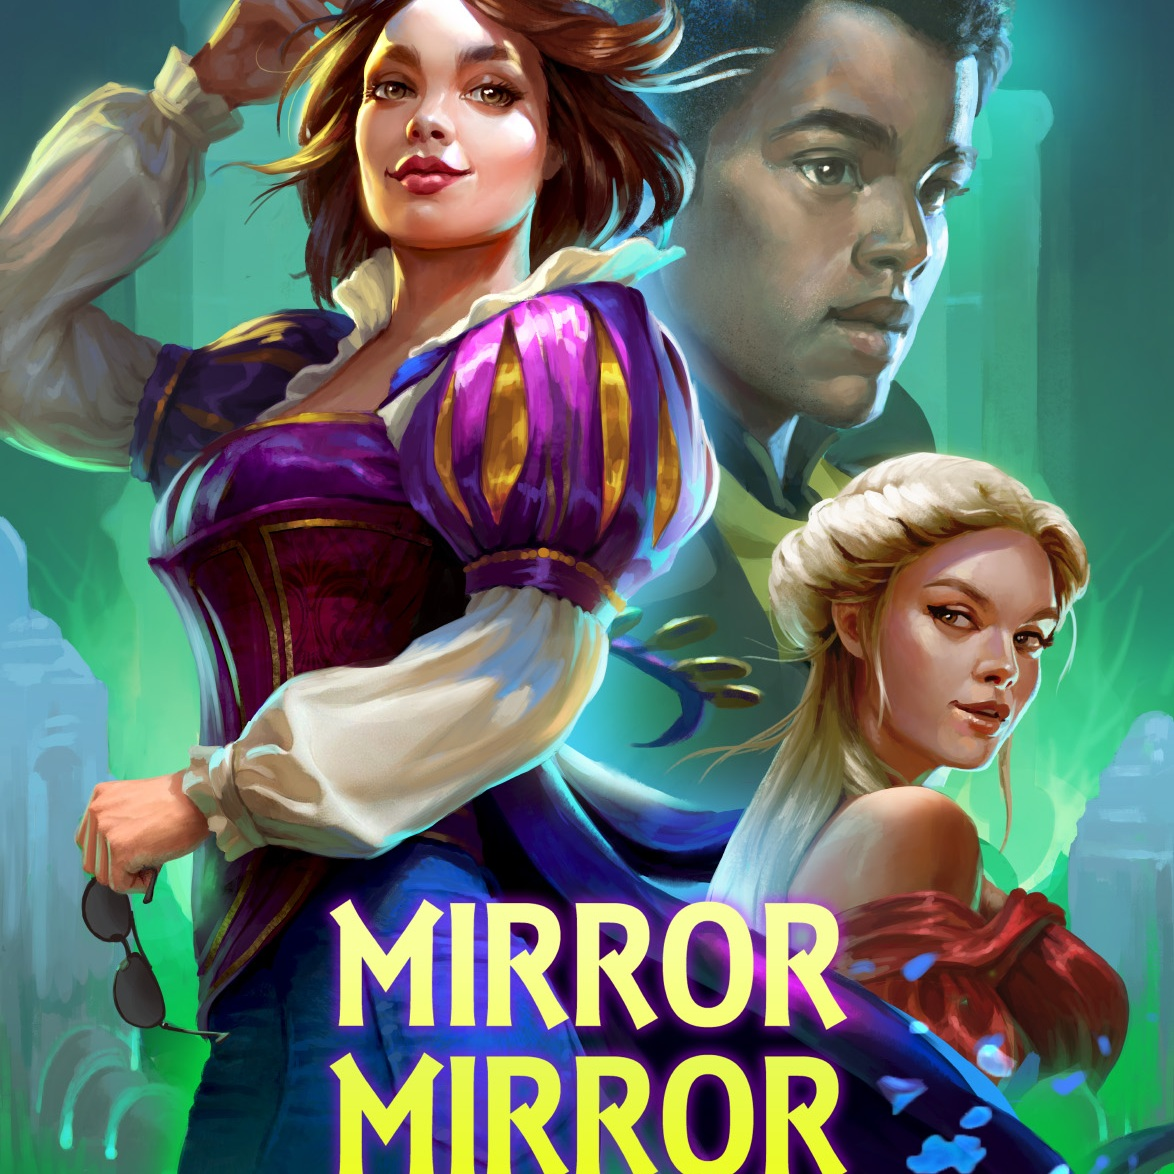 Sponsored Writer: Tales (In Beta) - Writing and providing the narrative design for multiple titles within the app including Mirror, Mirror and an unannounced title.Available on the Apple App Store.